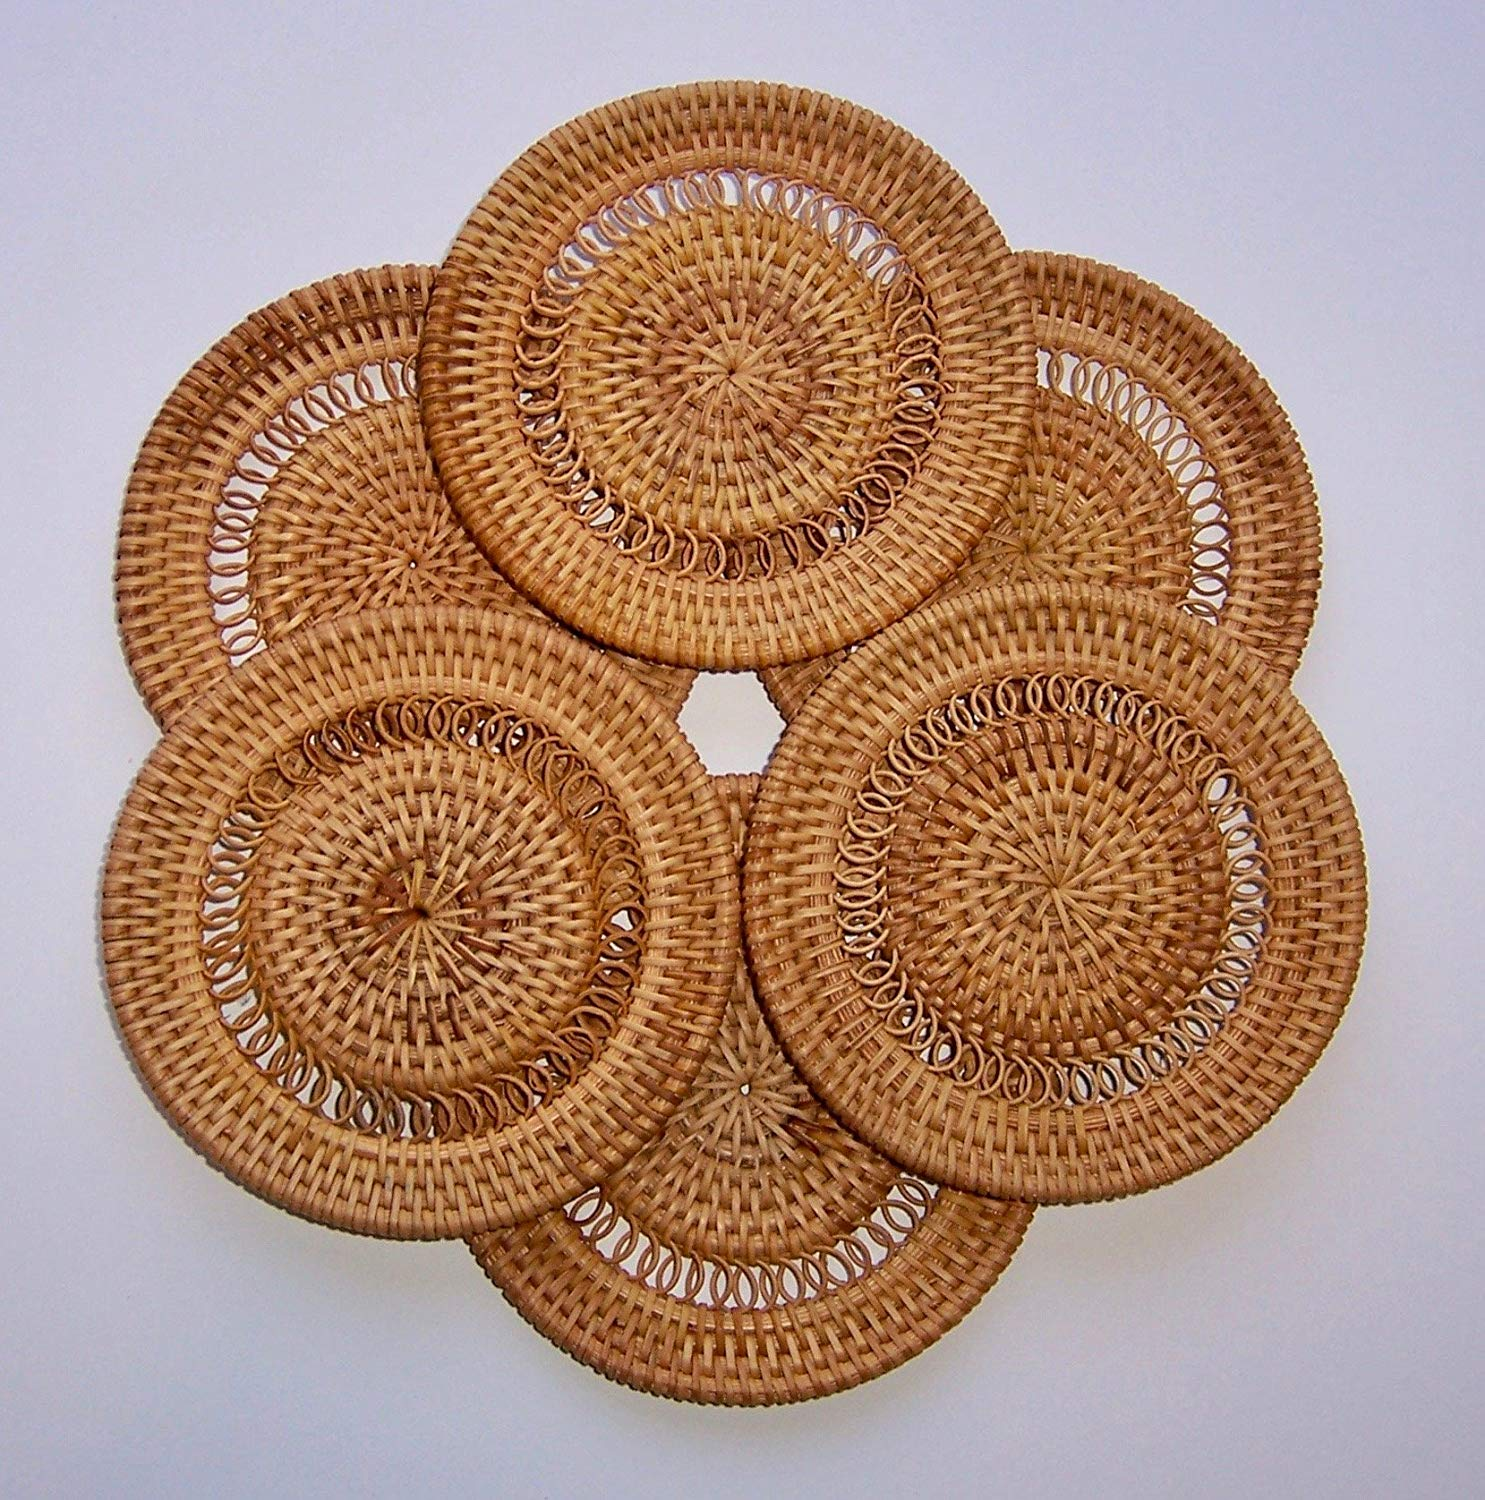 Set of 6 Hand Woven Bamboo Coasters. These Handcrafted Reversible Tea Coasters Feature Rattan Bamboo. Unique Decorative Organic Table Coasters Set for Beverages – Round Bamboo Coasters